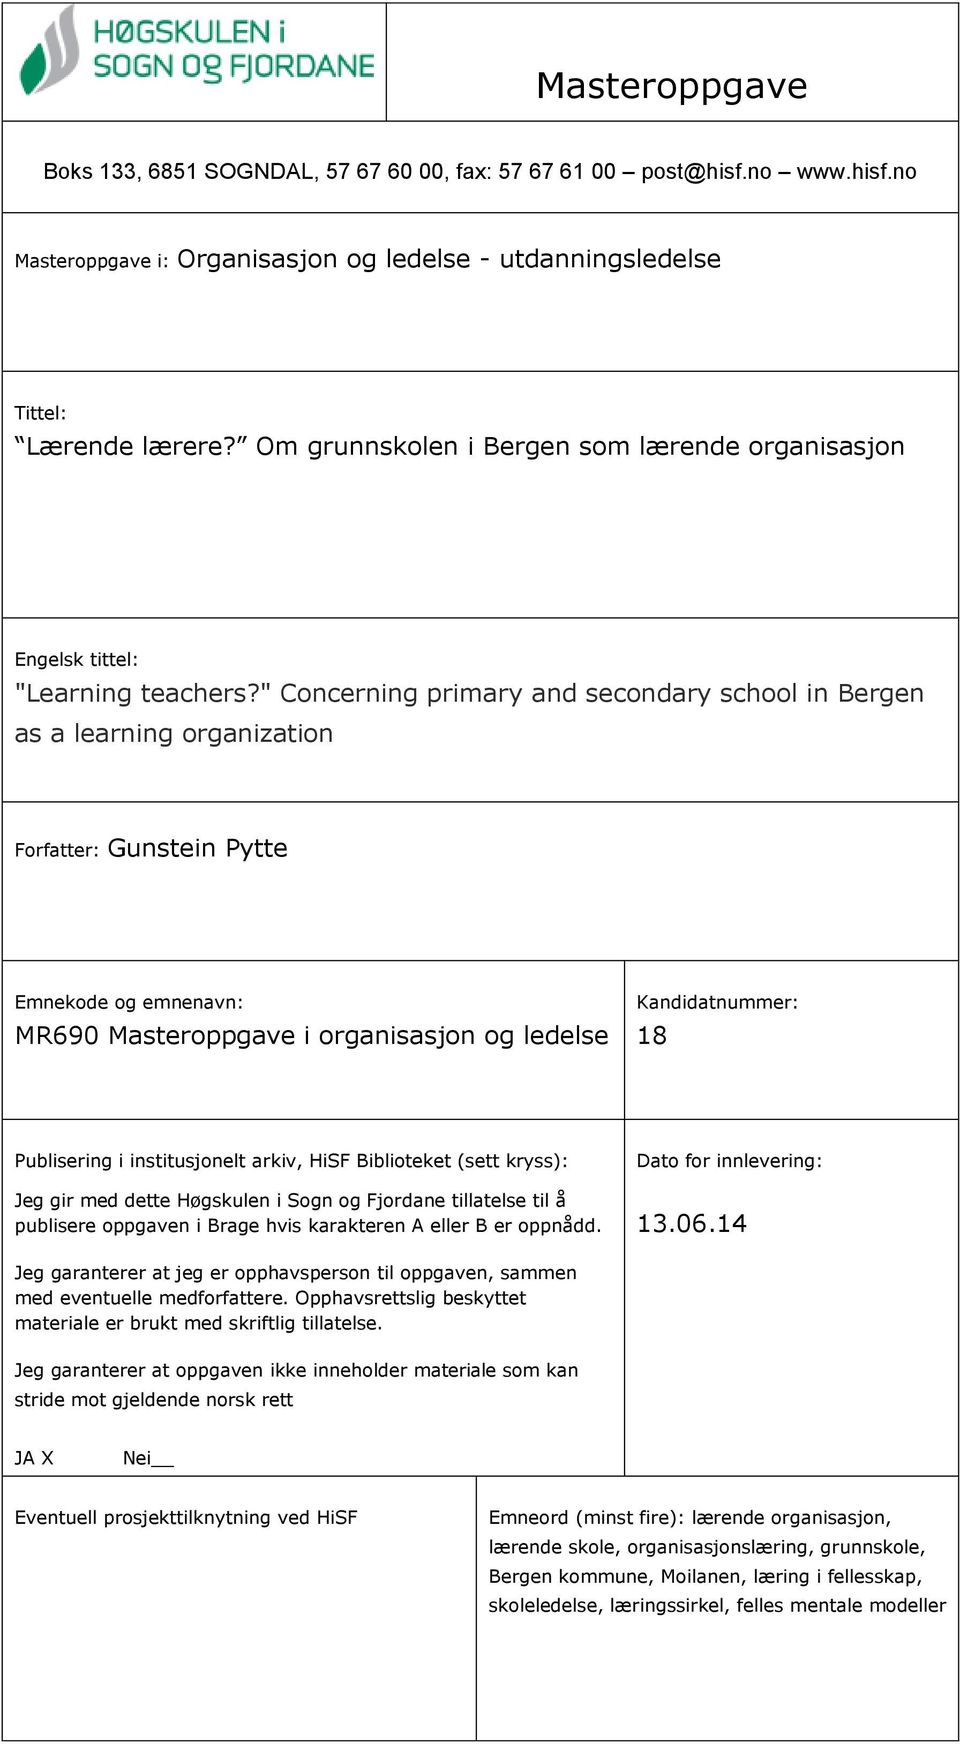 """ Concerning primary and secondary school in Bergen as a learning organization Forfatter: Gunstein Pytte Emnekode og emnenavn: MR690 Masteroppgave i organisasjon og ledelse Kandidatnummer: 18"